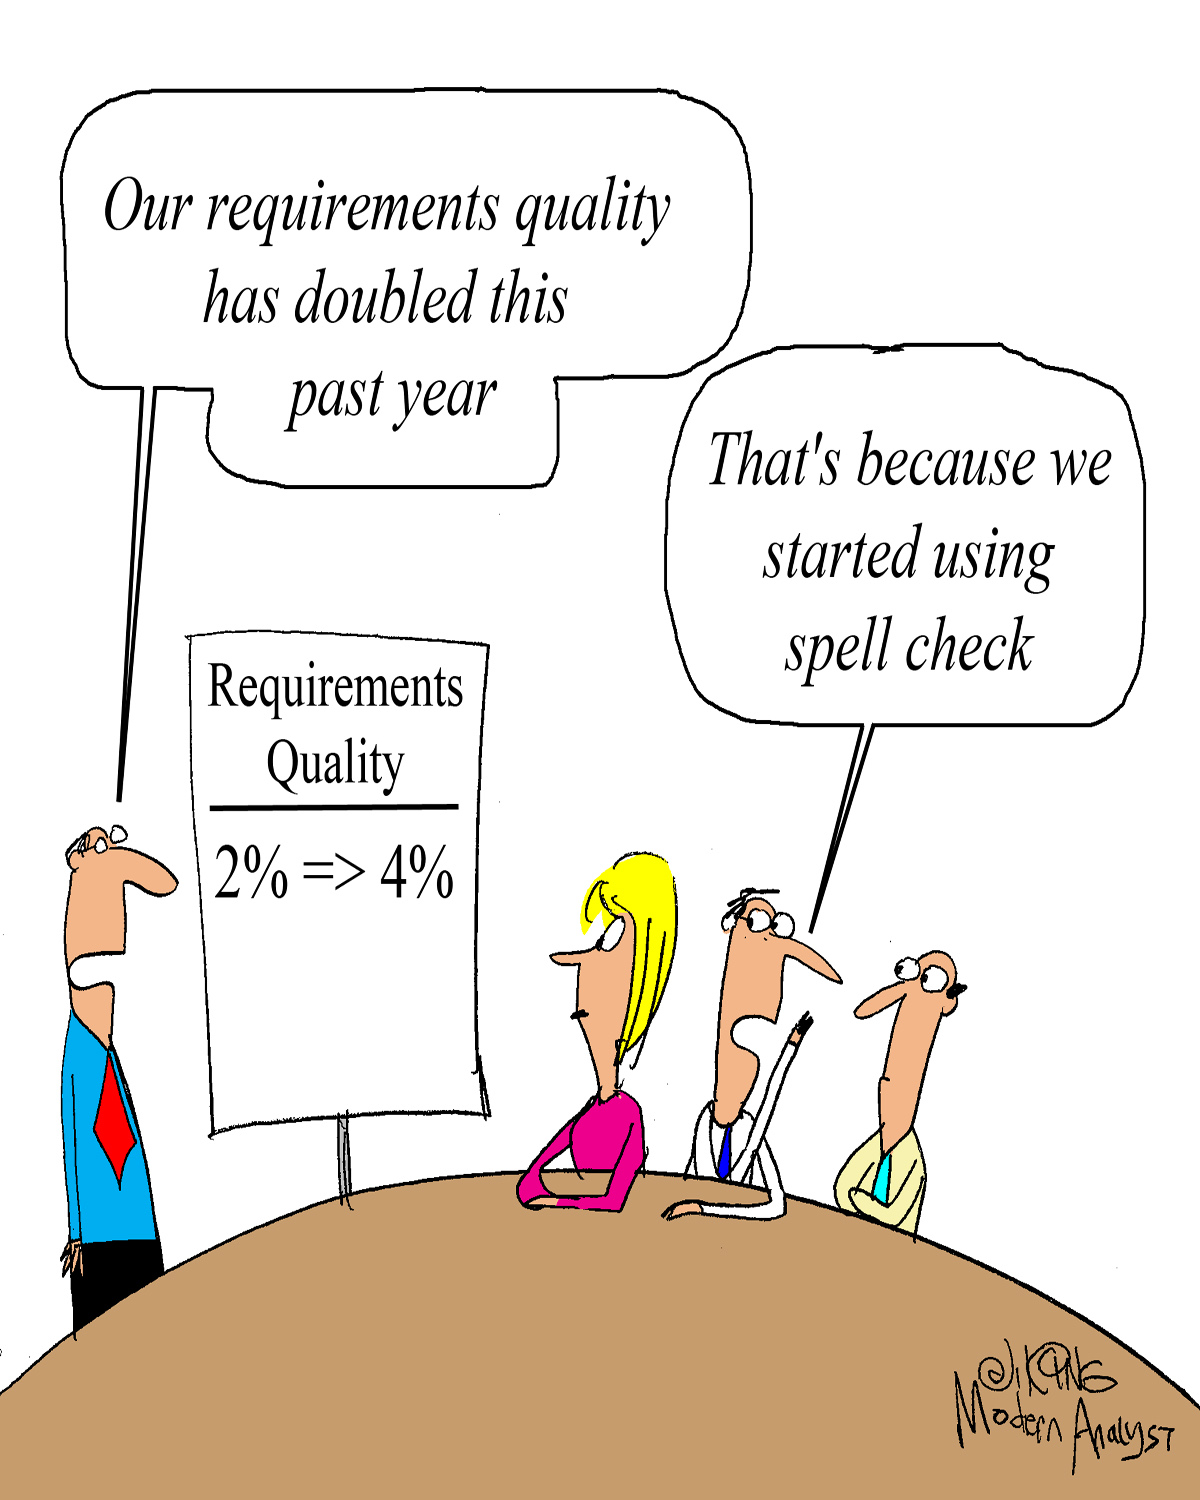 Humor How To Increase Requirements Quality